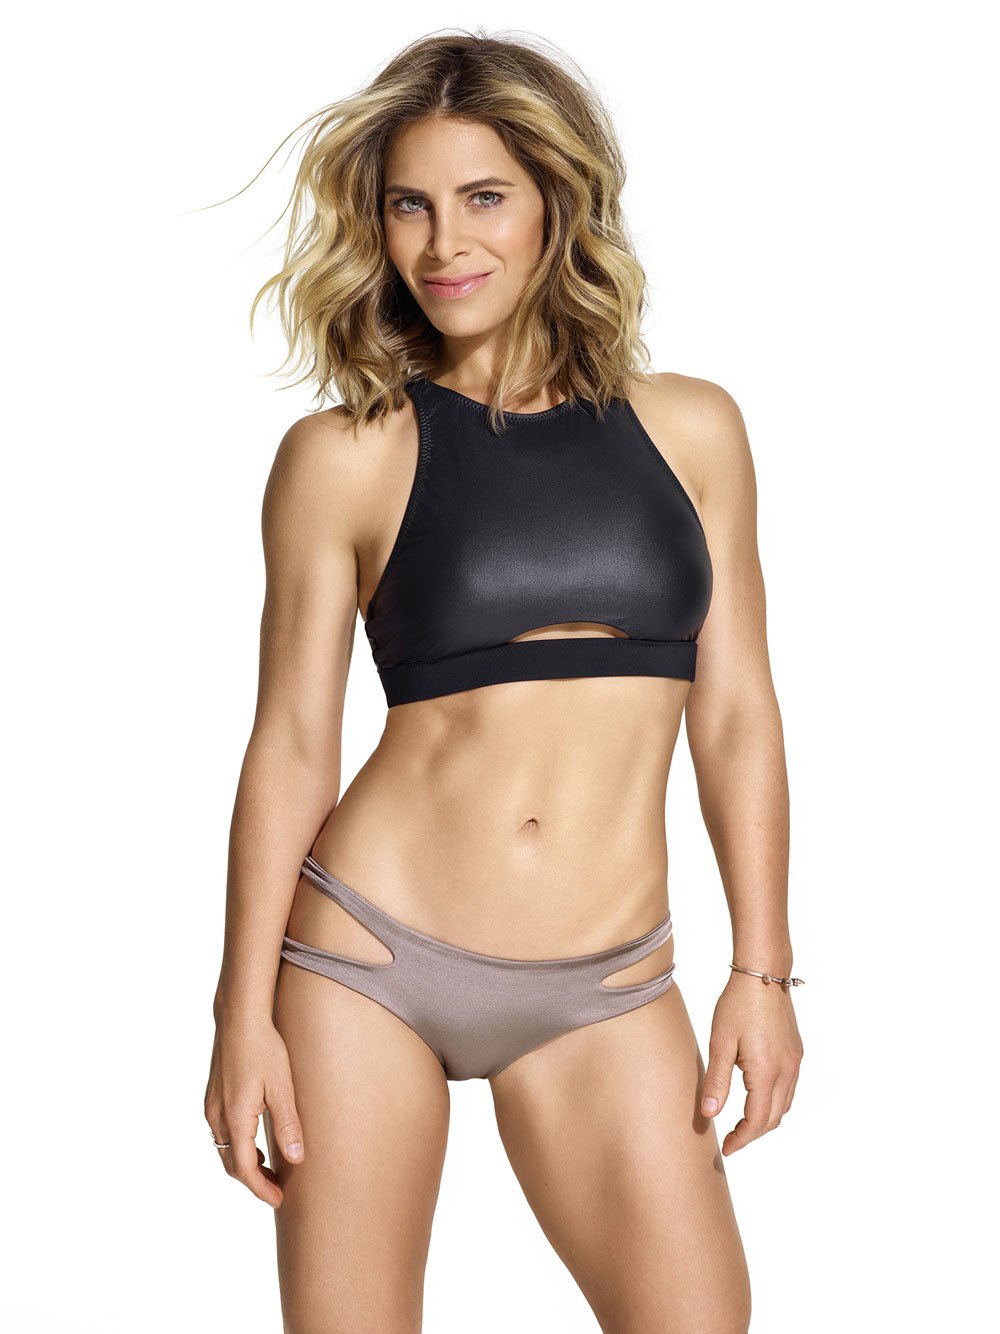 jillian michaels body revolution скачать